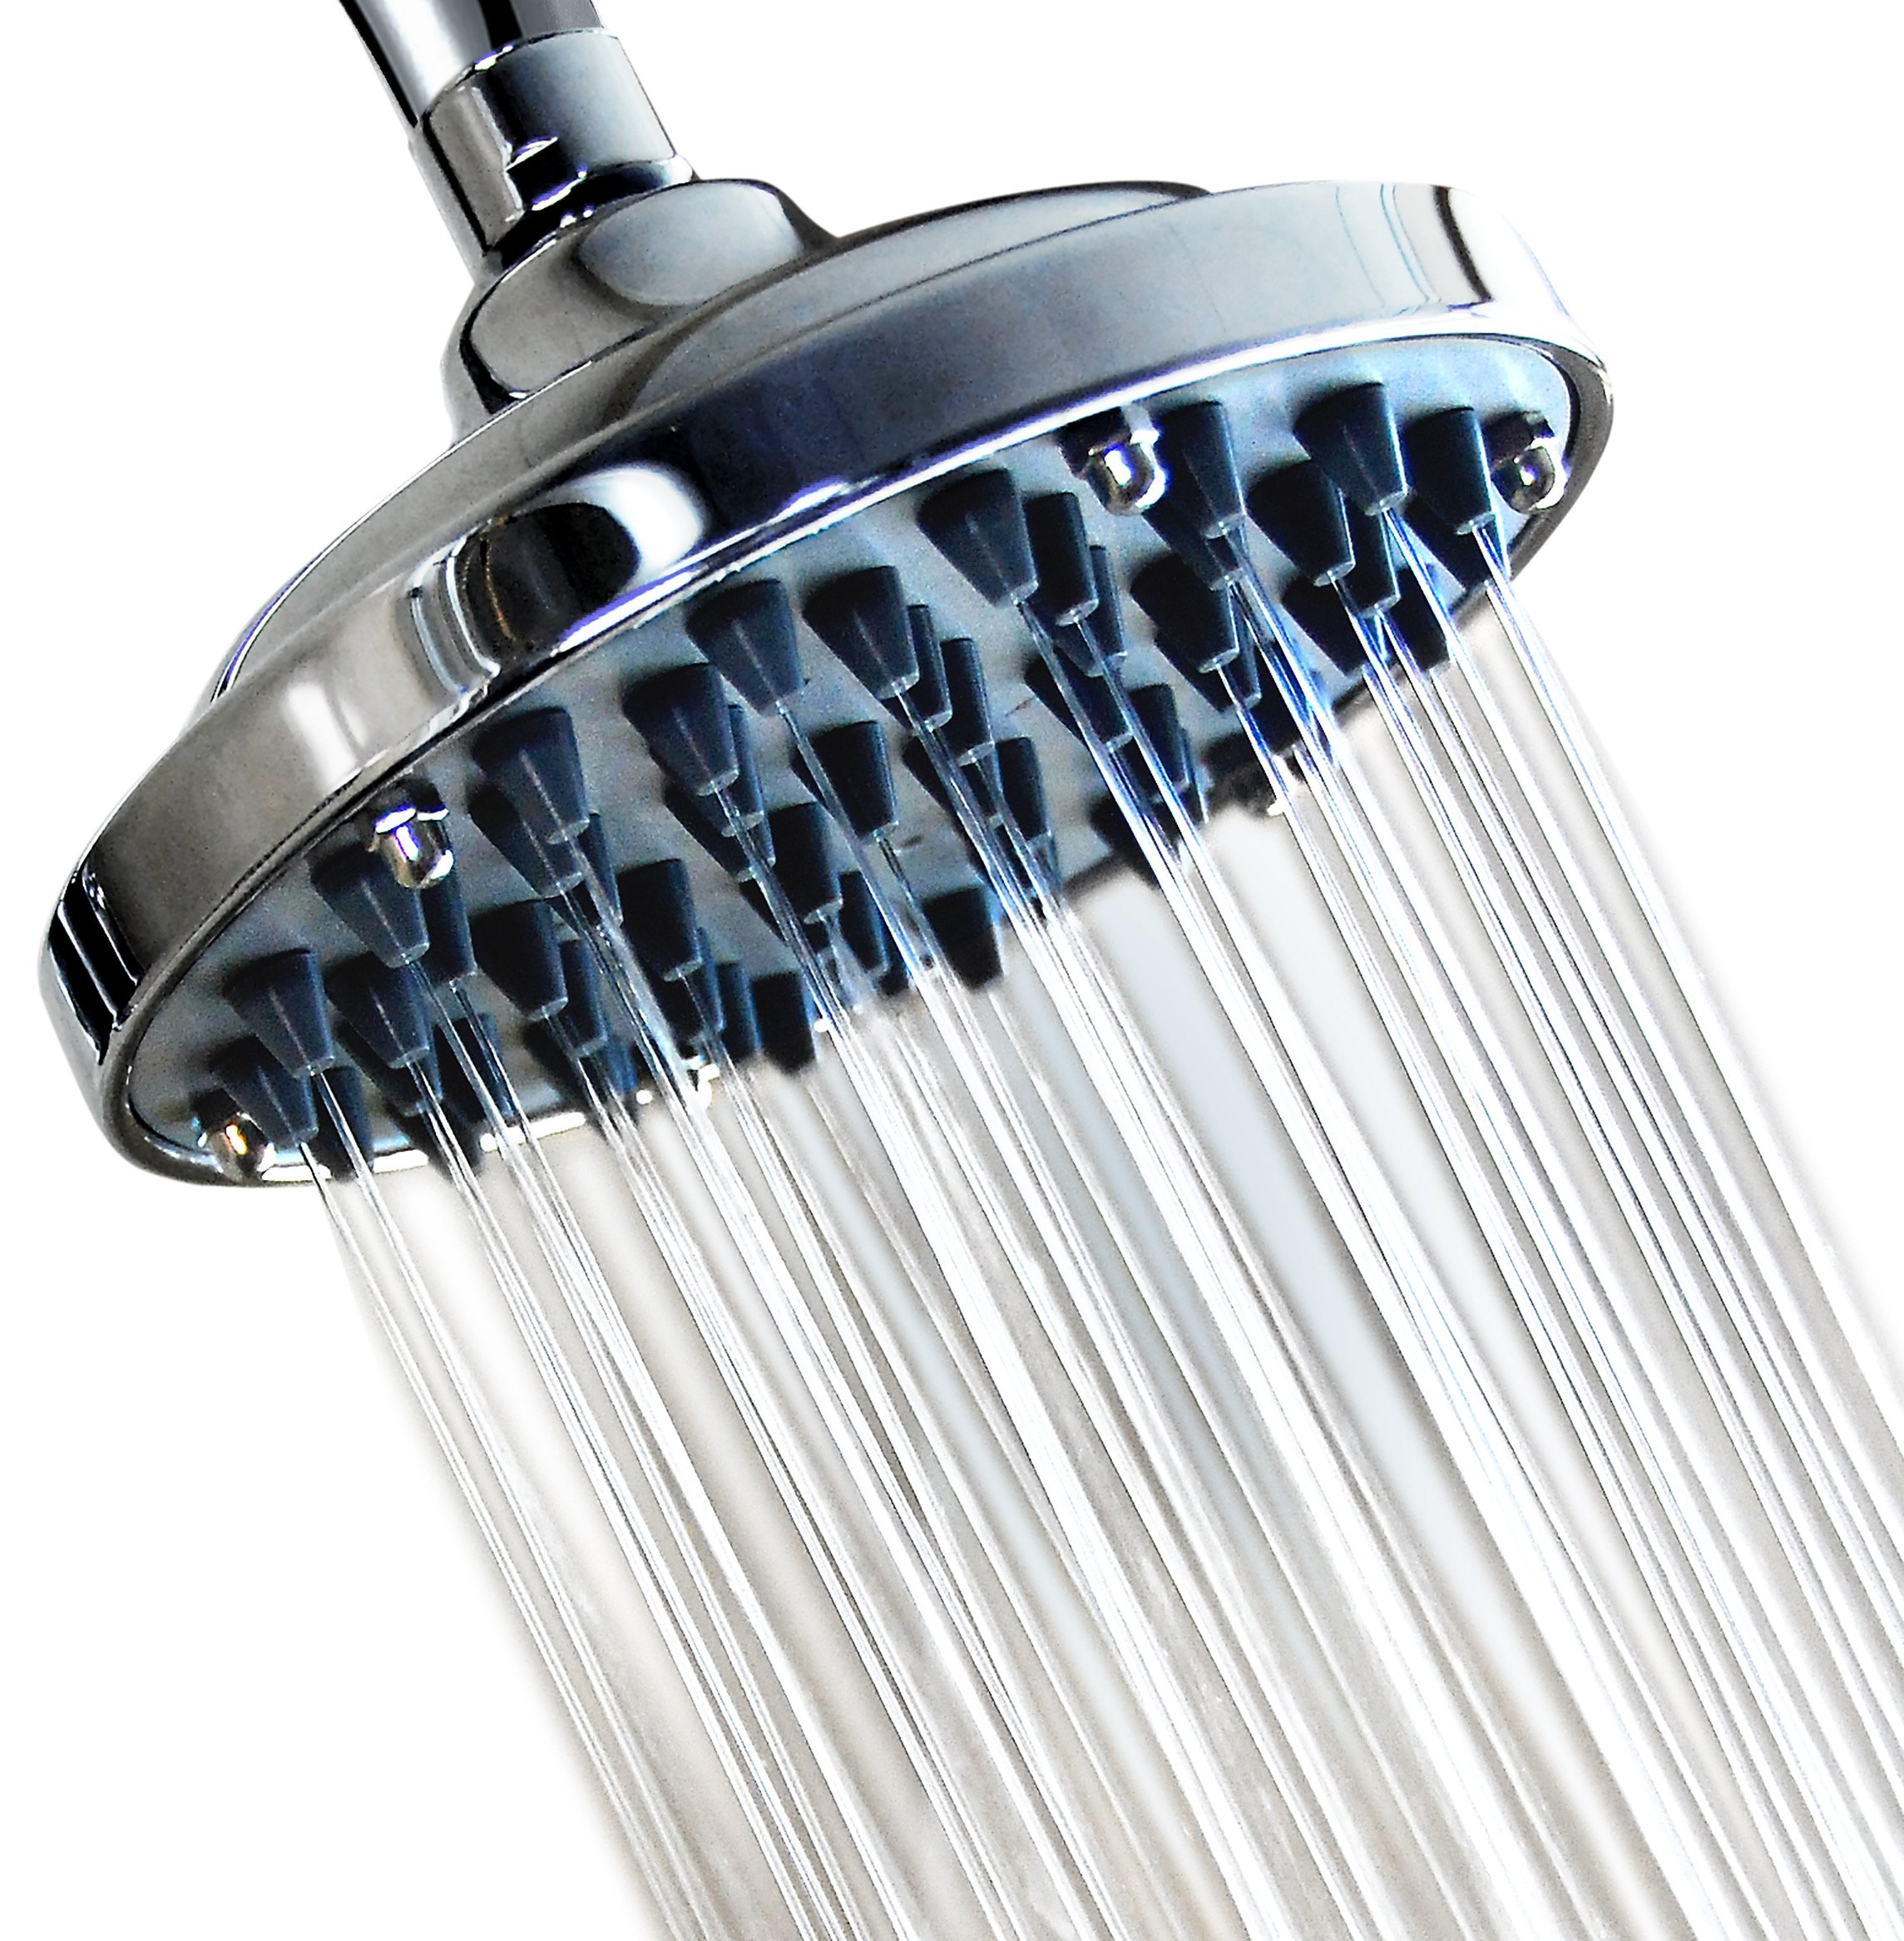 6 Inch High Pressure Rainfall Massage Shower Head - Disassembled Clean Nozzles - Wall Mount - Bathroom Showerhead Low Flow Showers - Chrome - Removable Water Restrictor - Adjustable Metal Swivel Ball